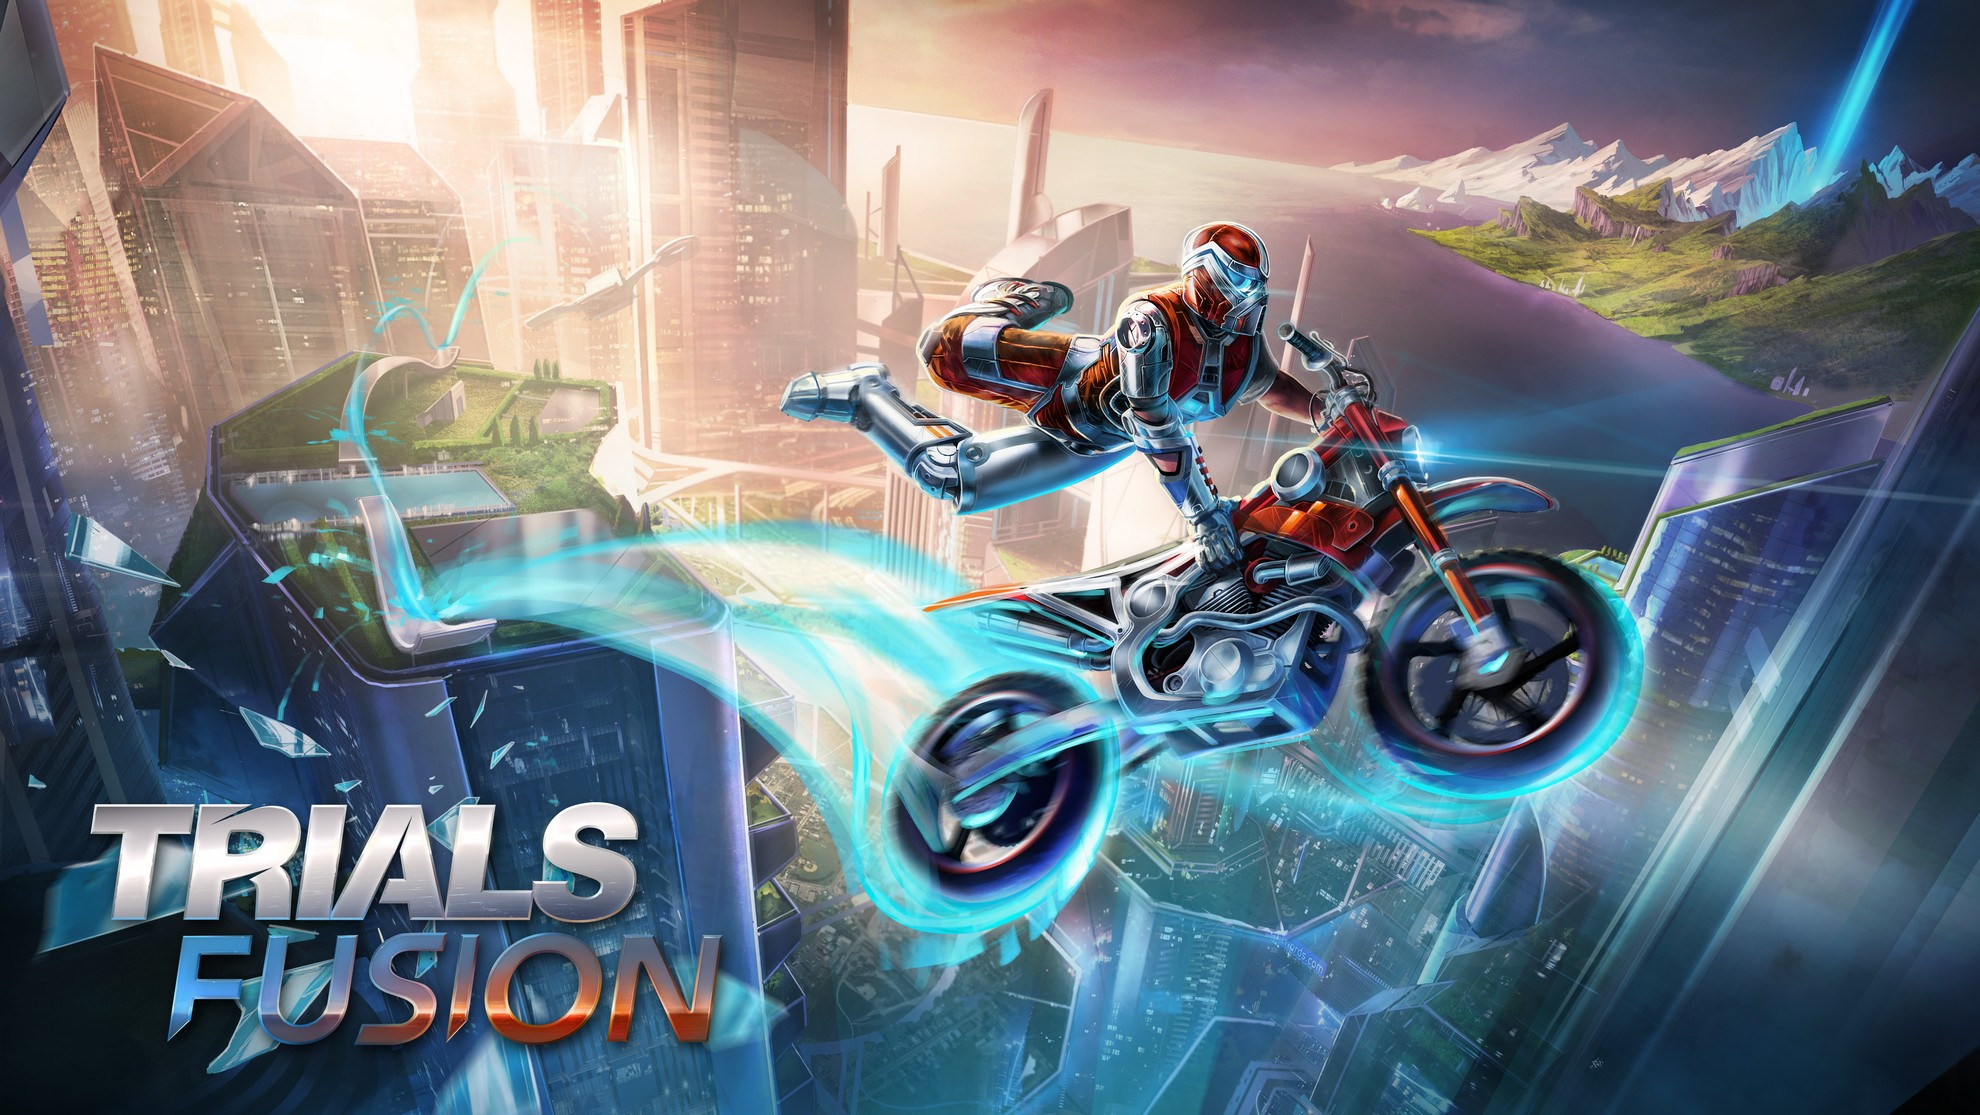 Trials Fusion trailer is up to new tricks